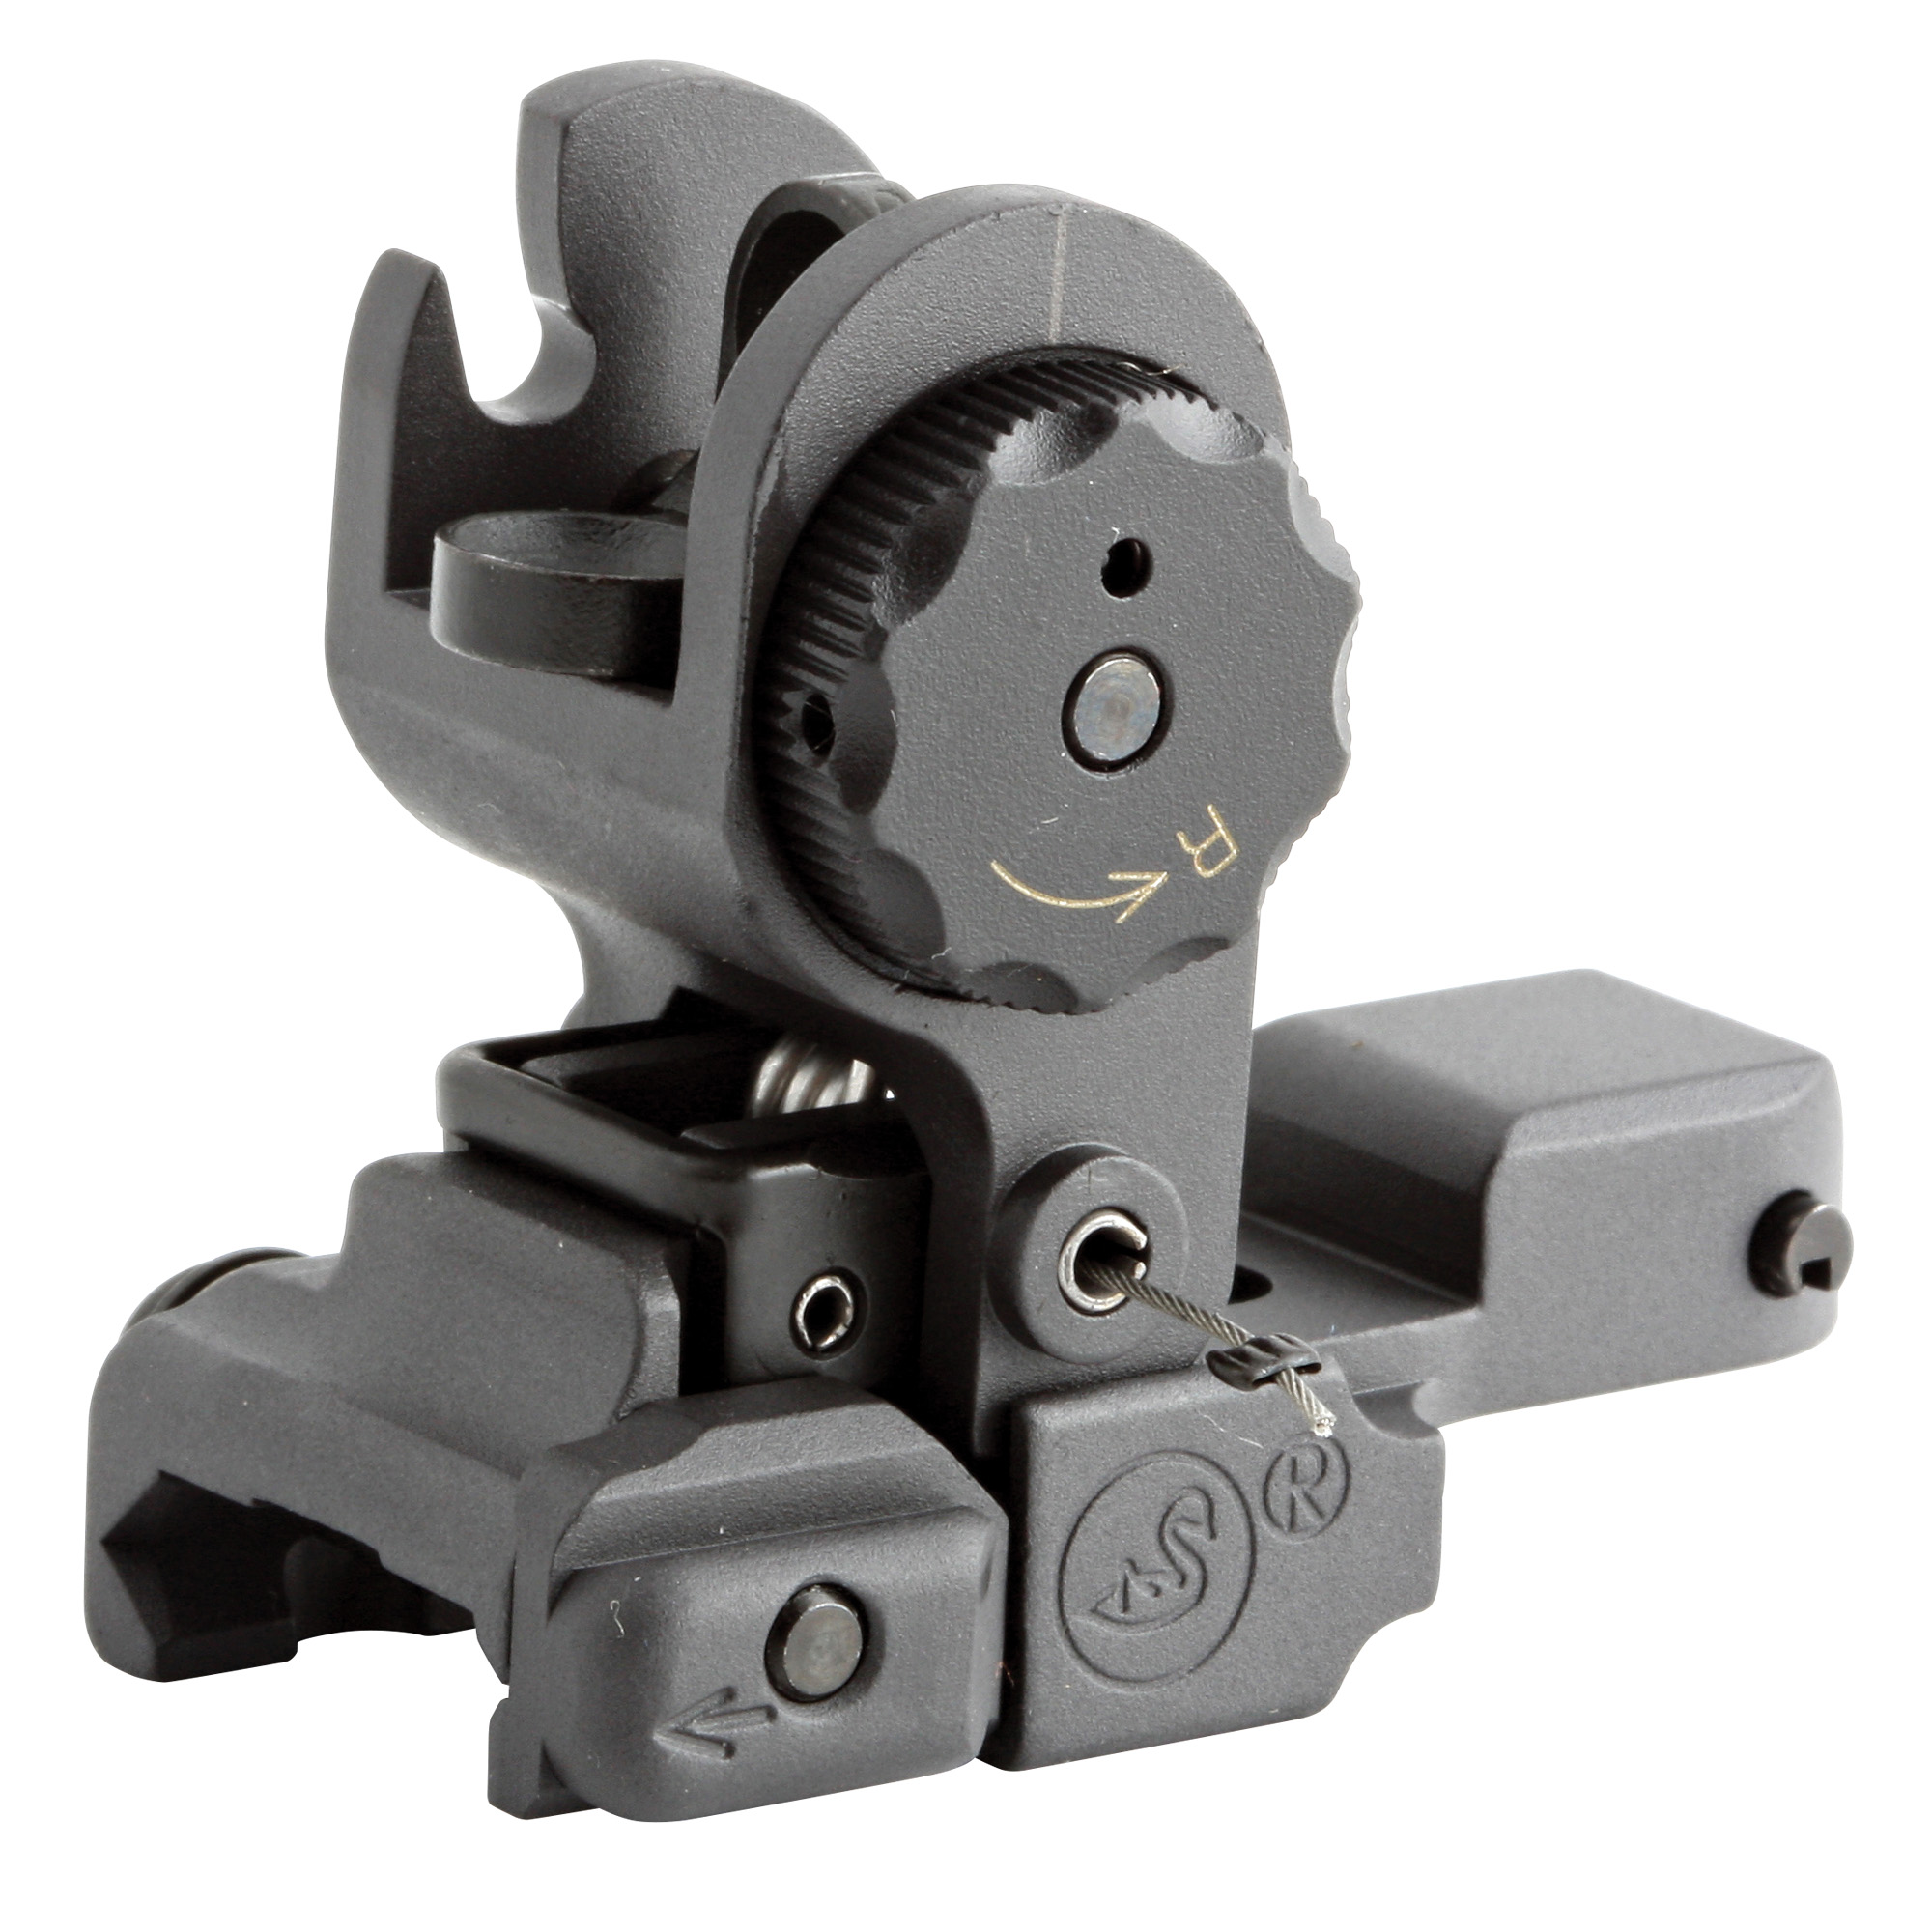 """The A.R.M.S.(R) #40(TM) Stand Alone Flip-Up Sight utilizes the same well proven concept as the rear sight on the Swan(R) Sleeve System. The unique design of the spring loaded rear sight ensures constant in battery action and repeat zero. The sight is held in the locked down position by a quick release lever"""" that prevents the sight from being accidentally engaged"""" but is as fast as a trigger to release even with arctic mittens. Has horizon line notch"""" 500-600 meter sight. Windage adjustments .75 MOA."""